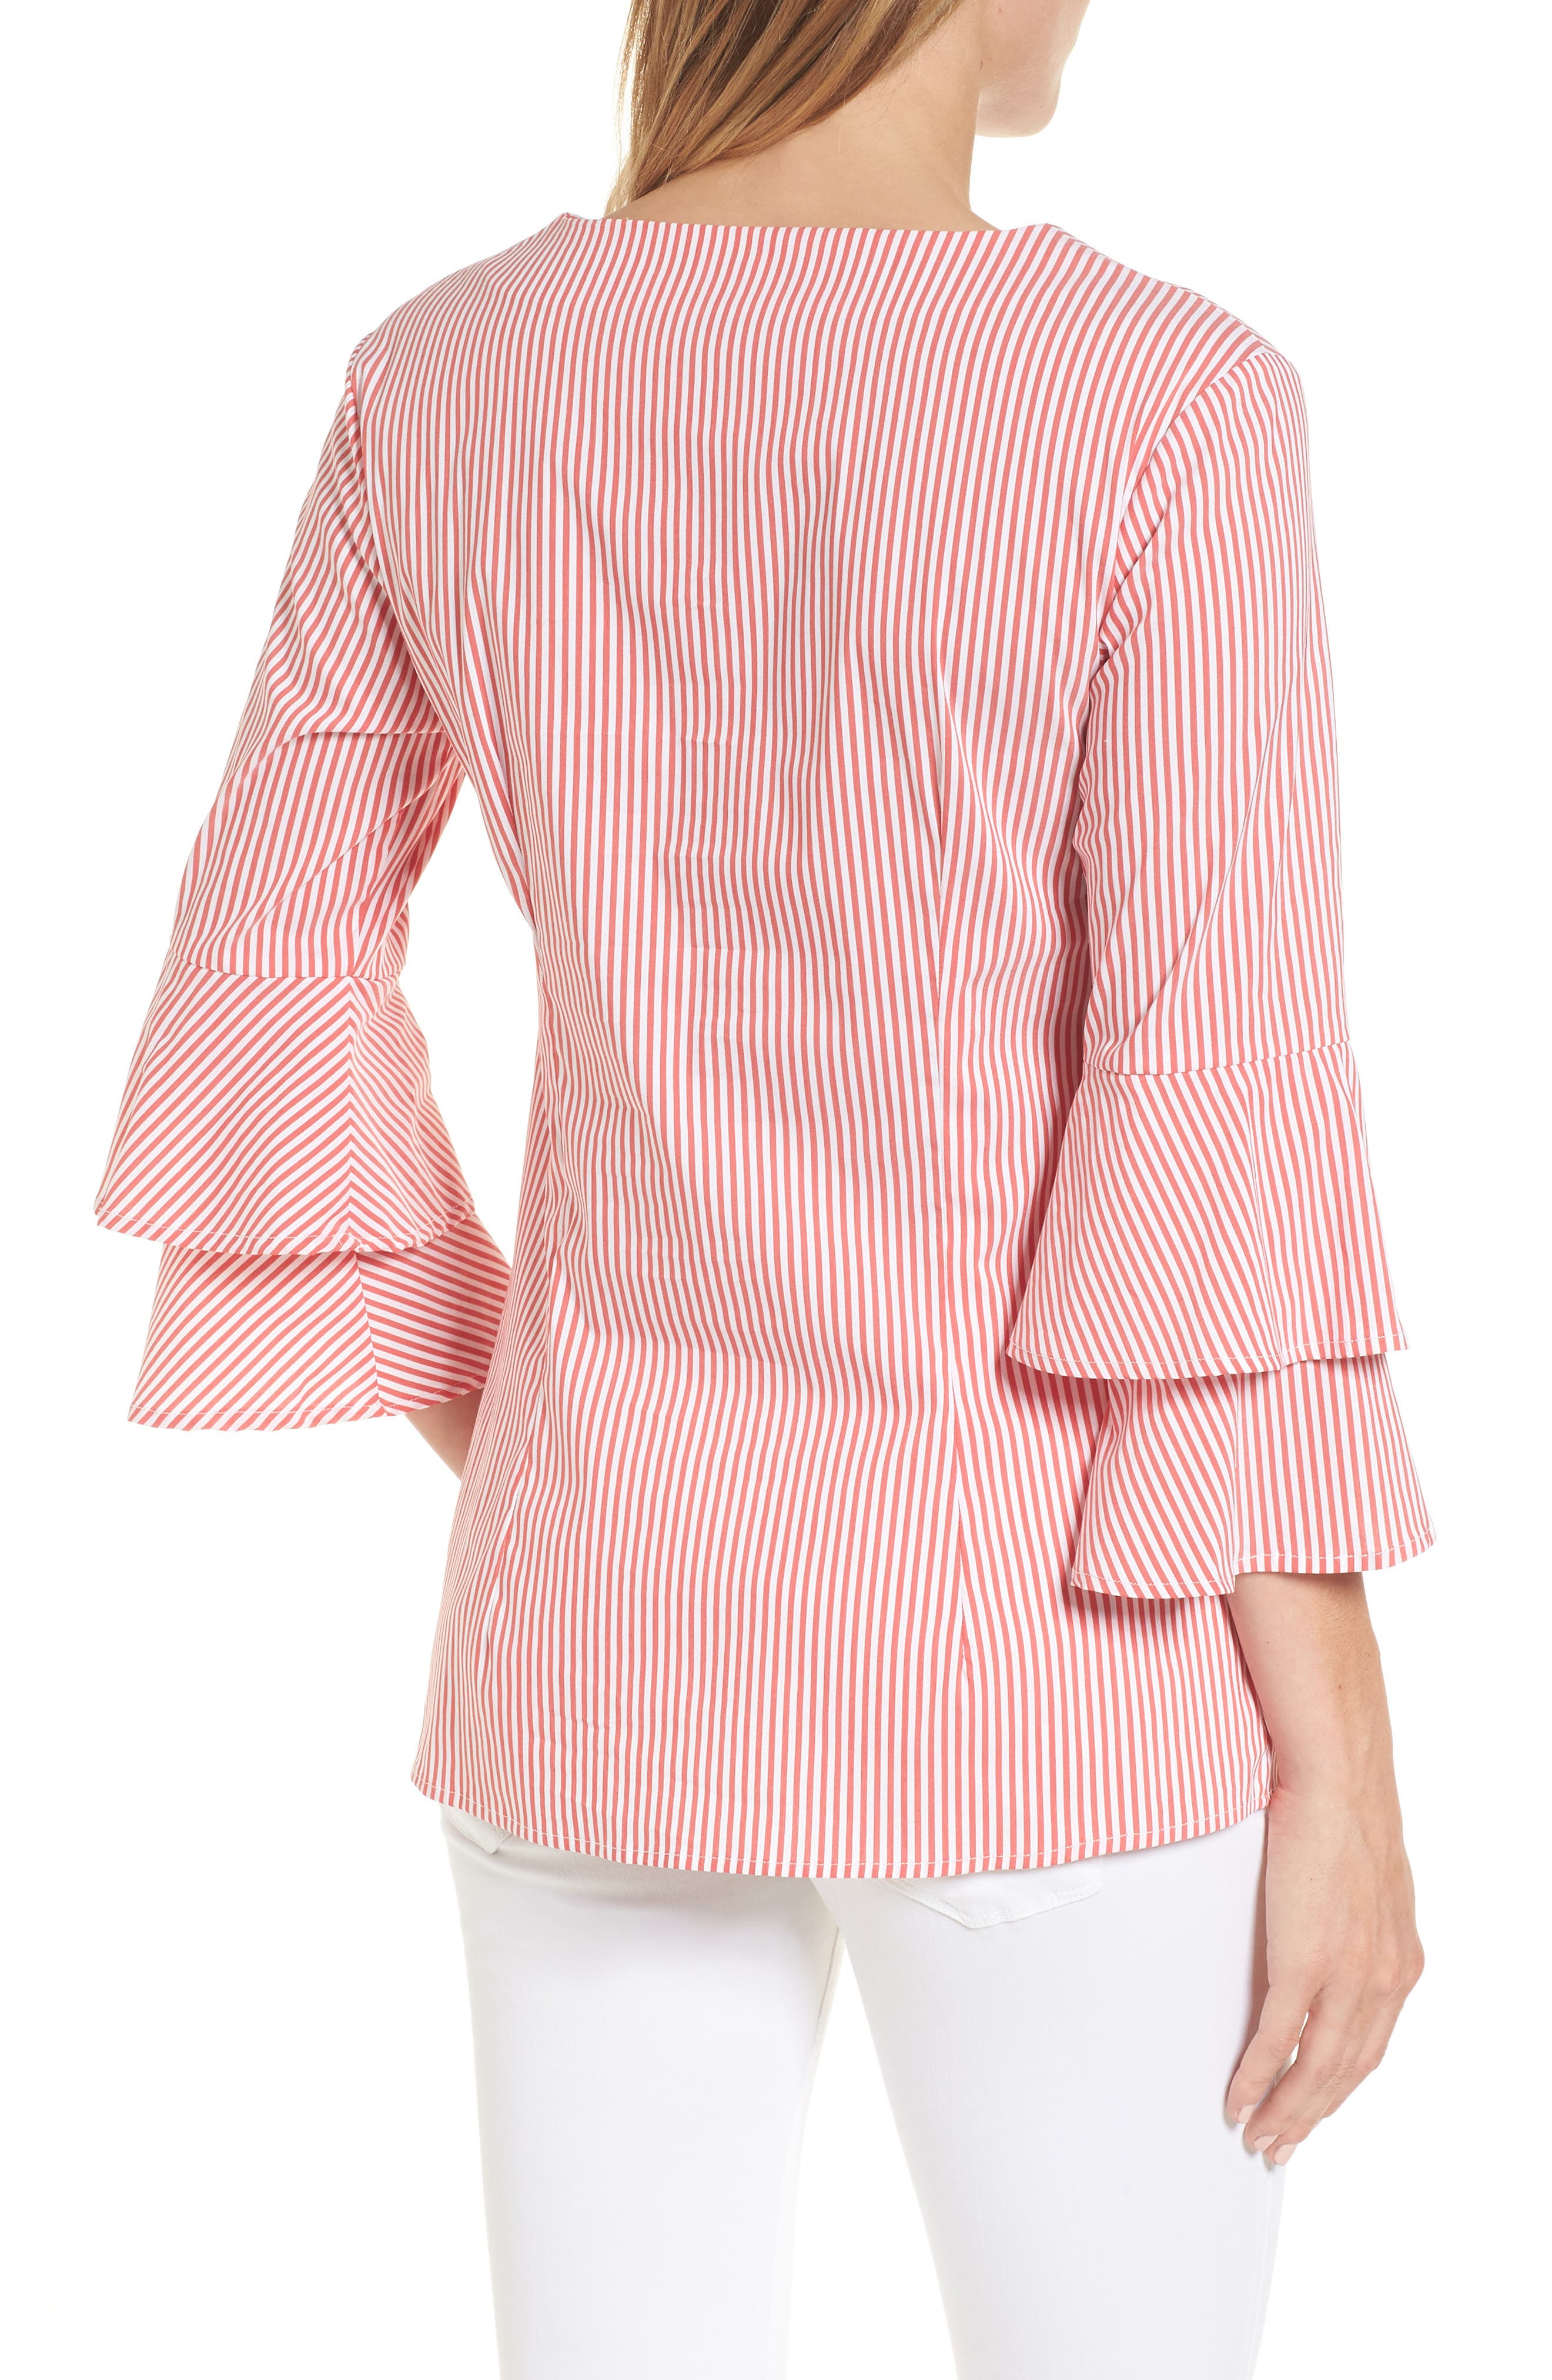 Adrianna Maternity Top,                             Alternate thumbnail 2, color,                             Red/White Stripe